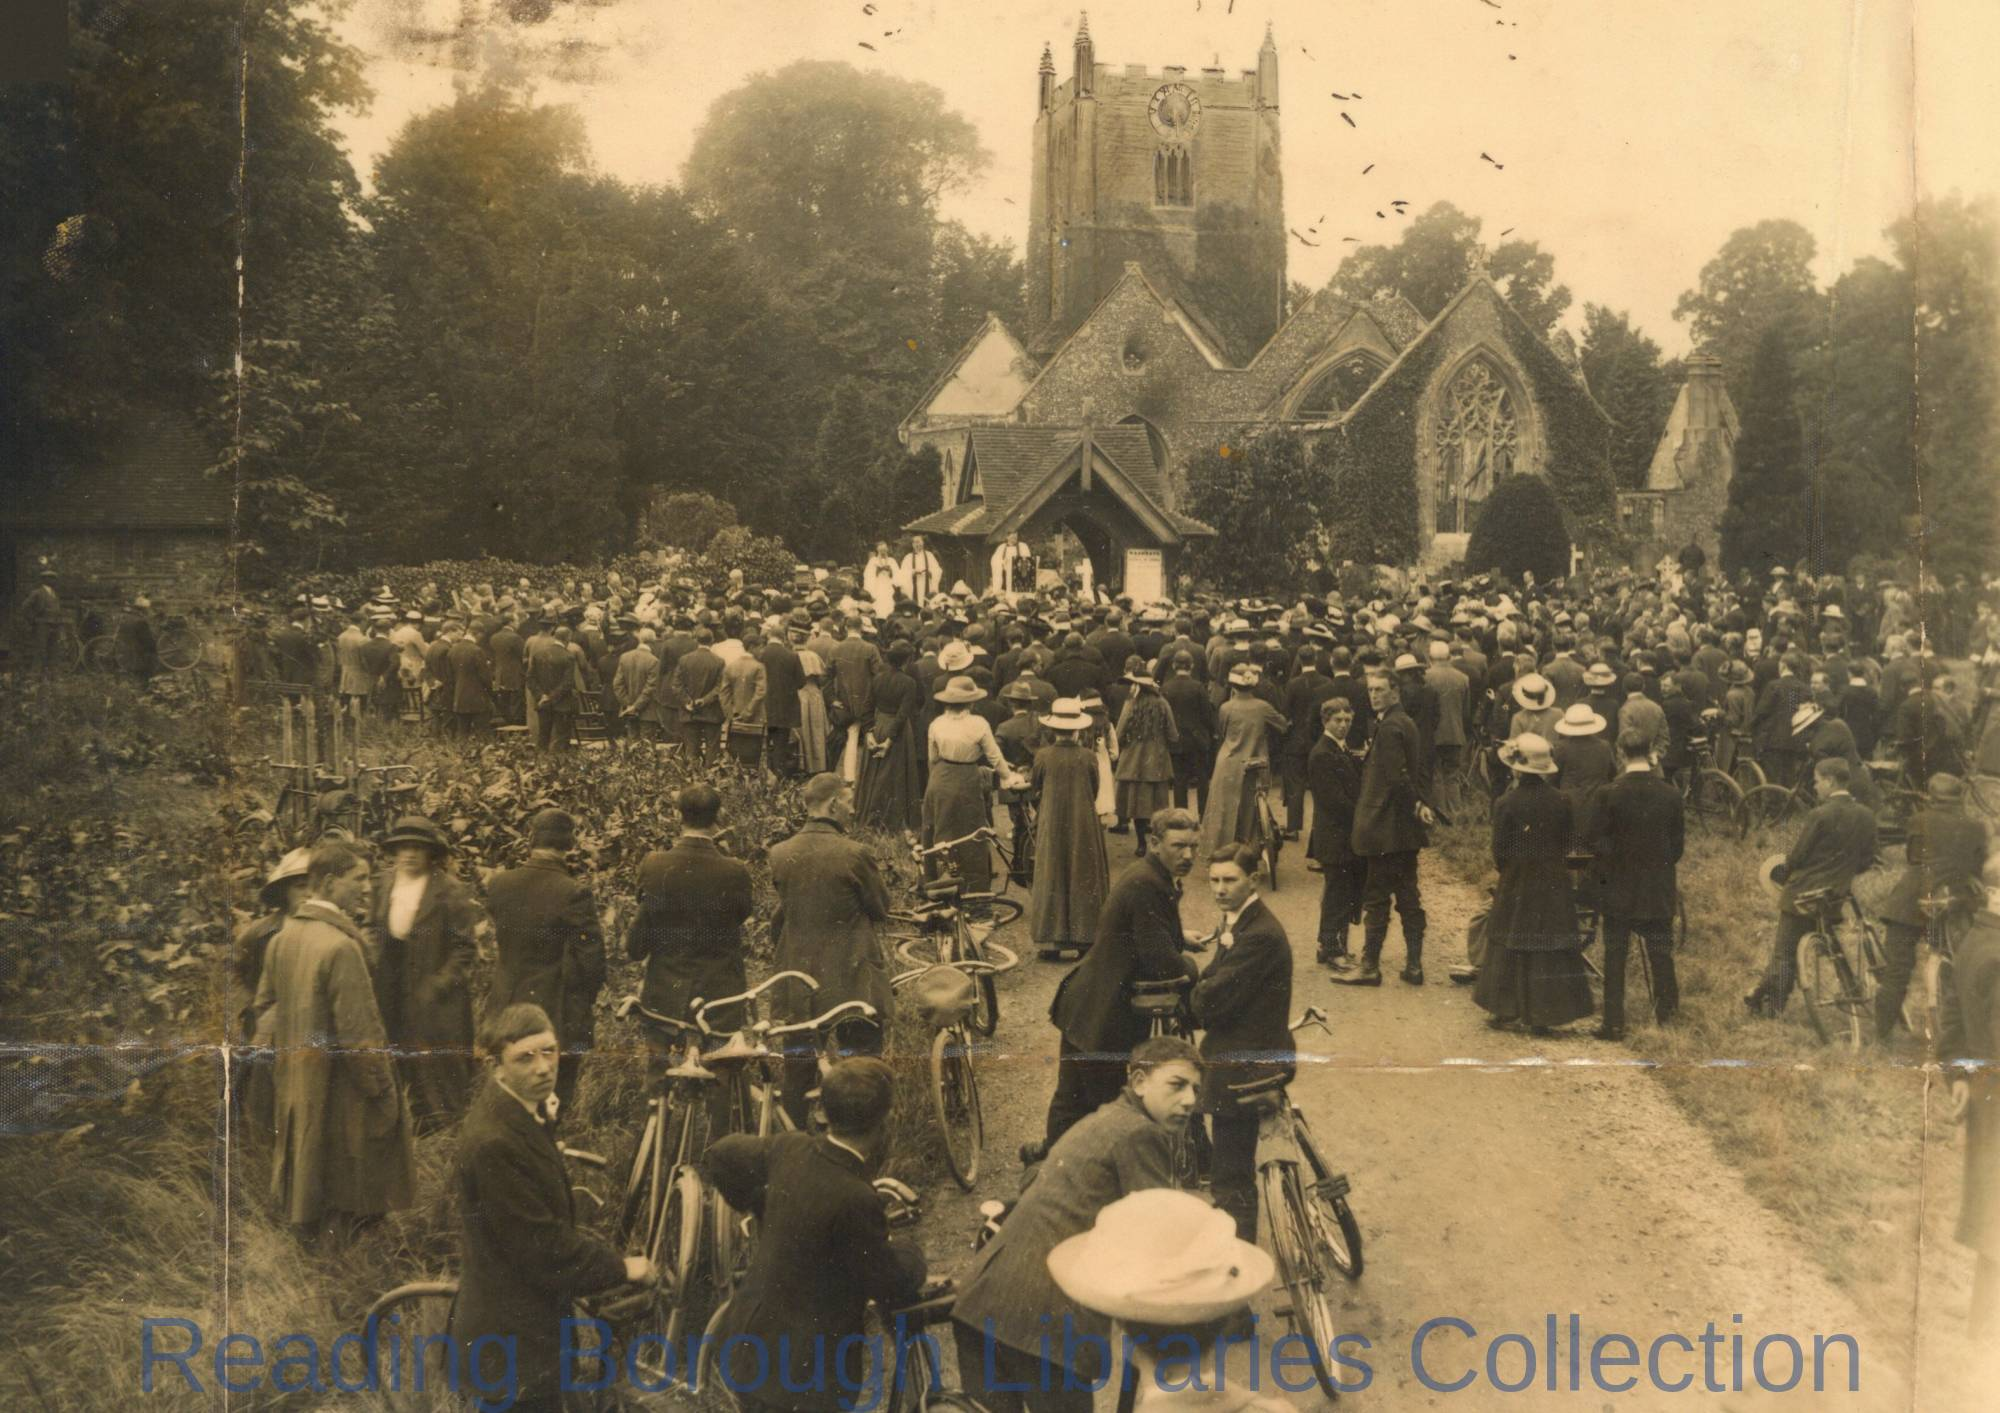 St. Mary's Church, Wargrave. The open-air service, 7 June 1914.